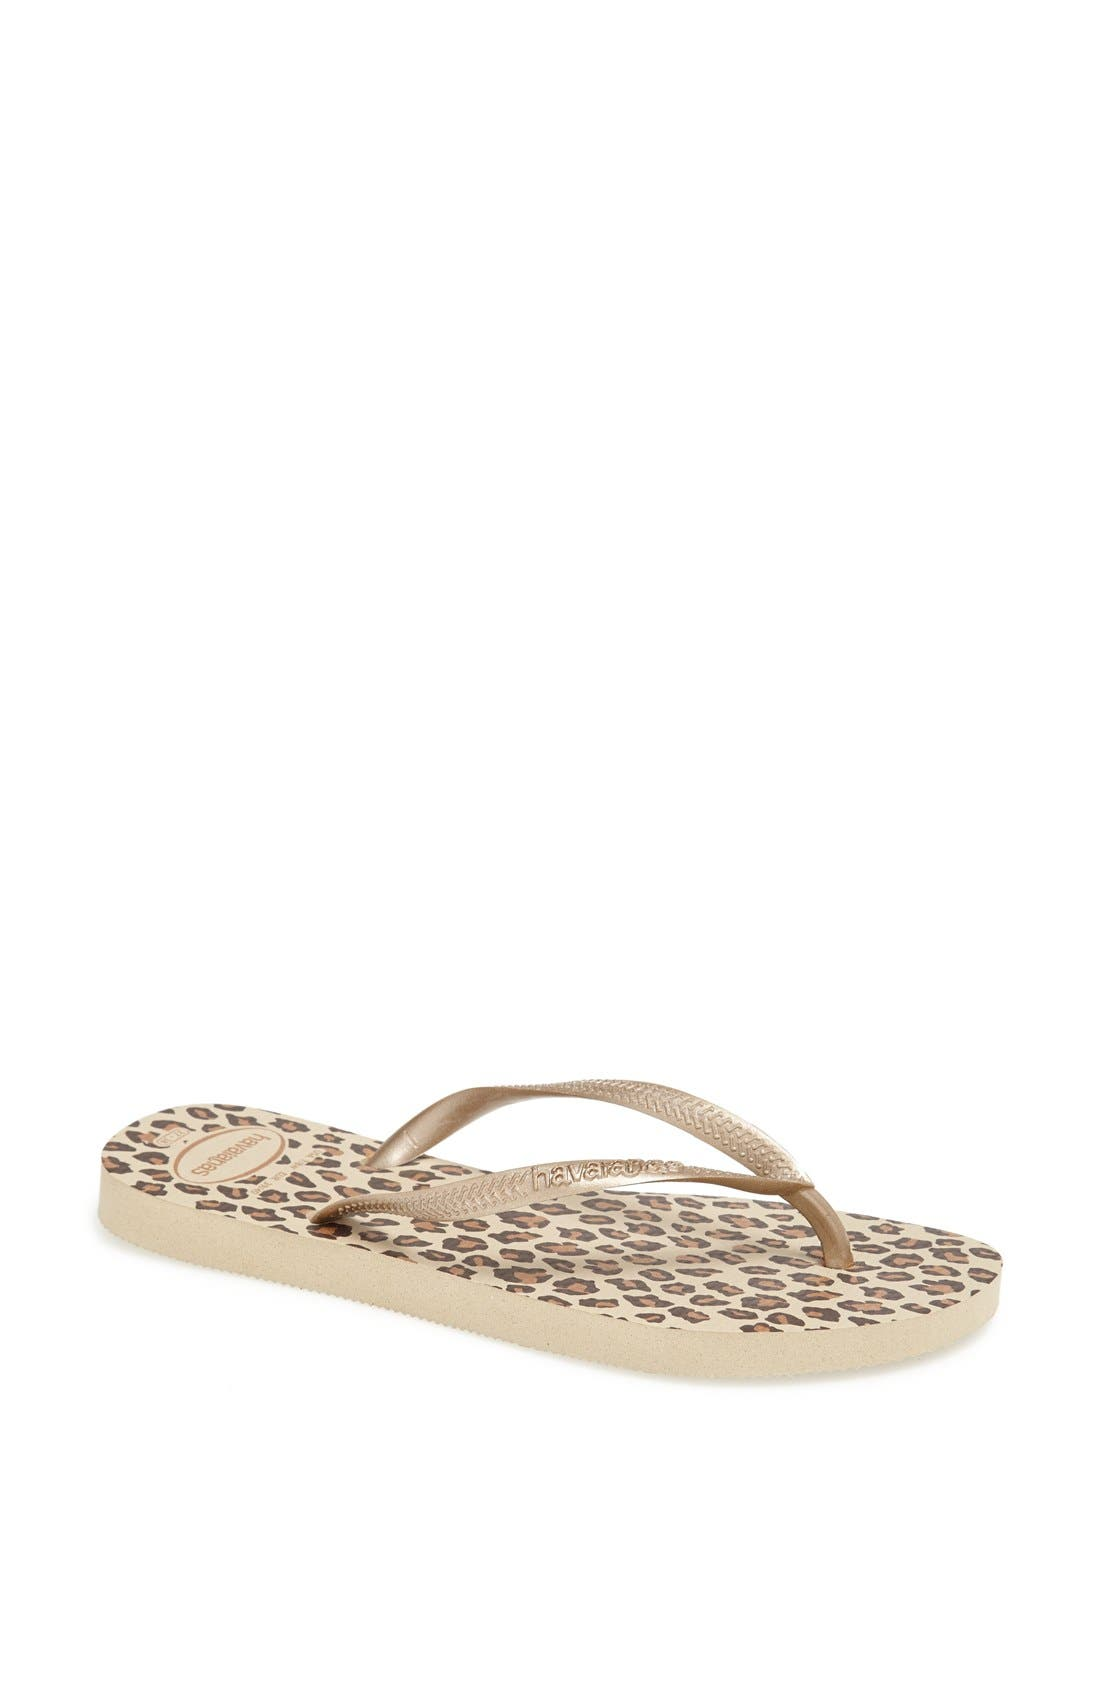 Main Image - Havaianas 'Slim Animal Print' Flip Flop (Women)